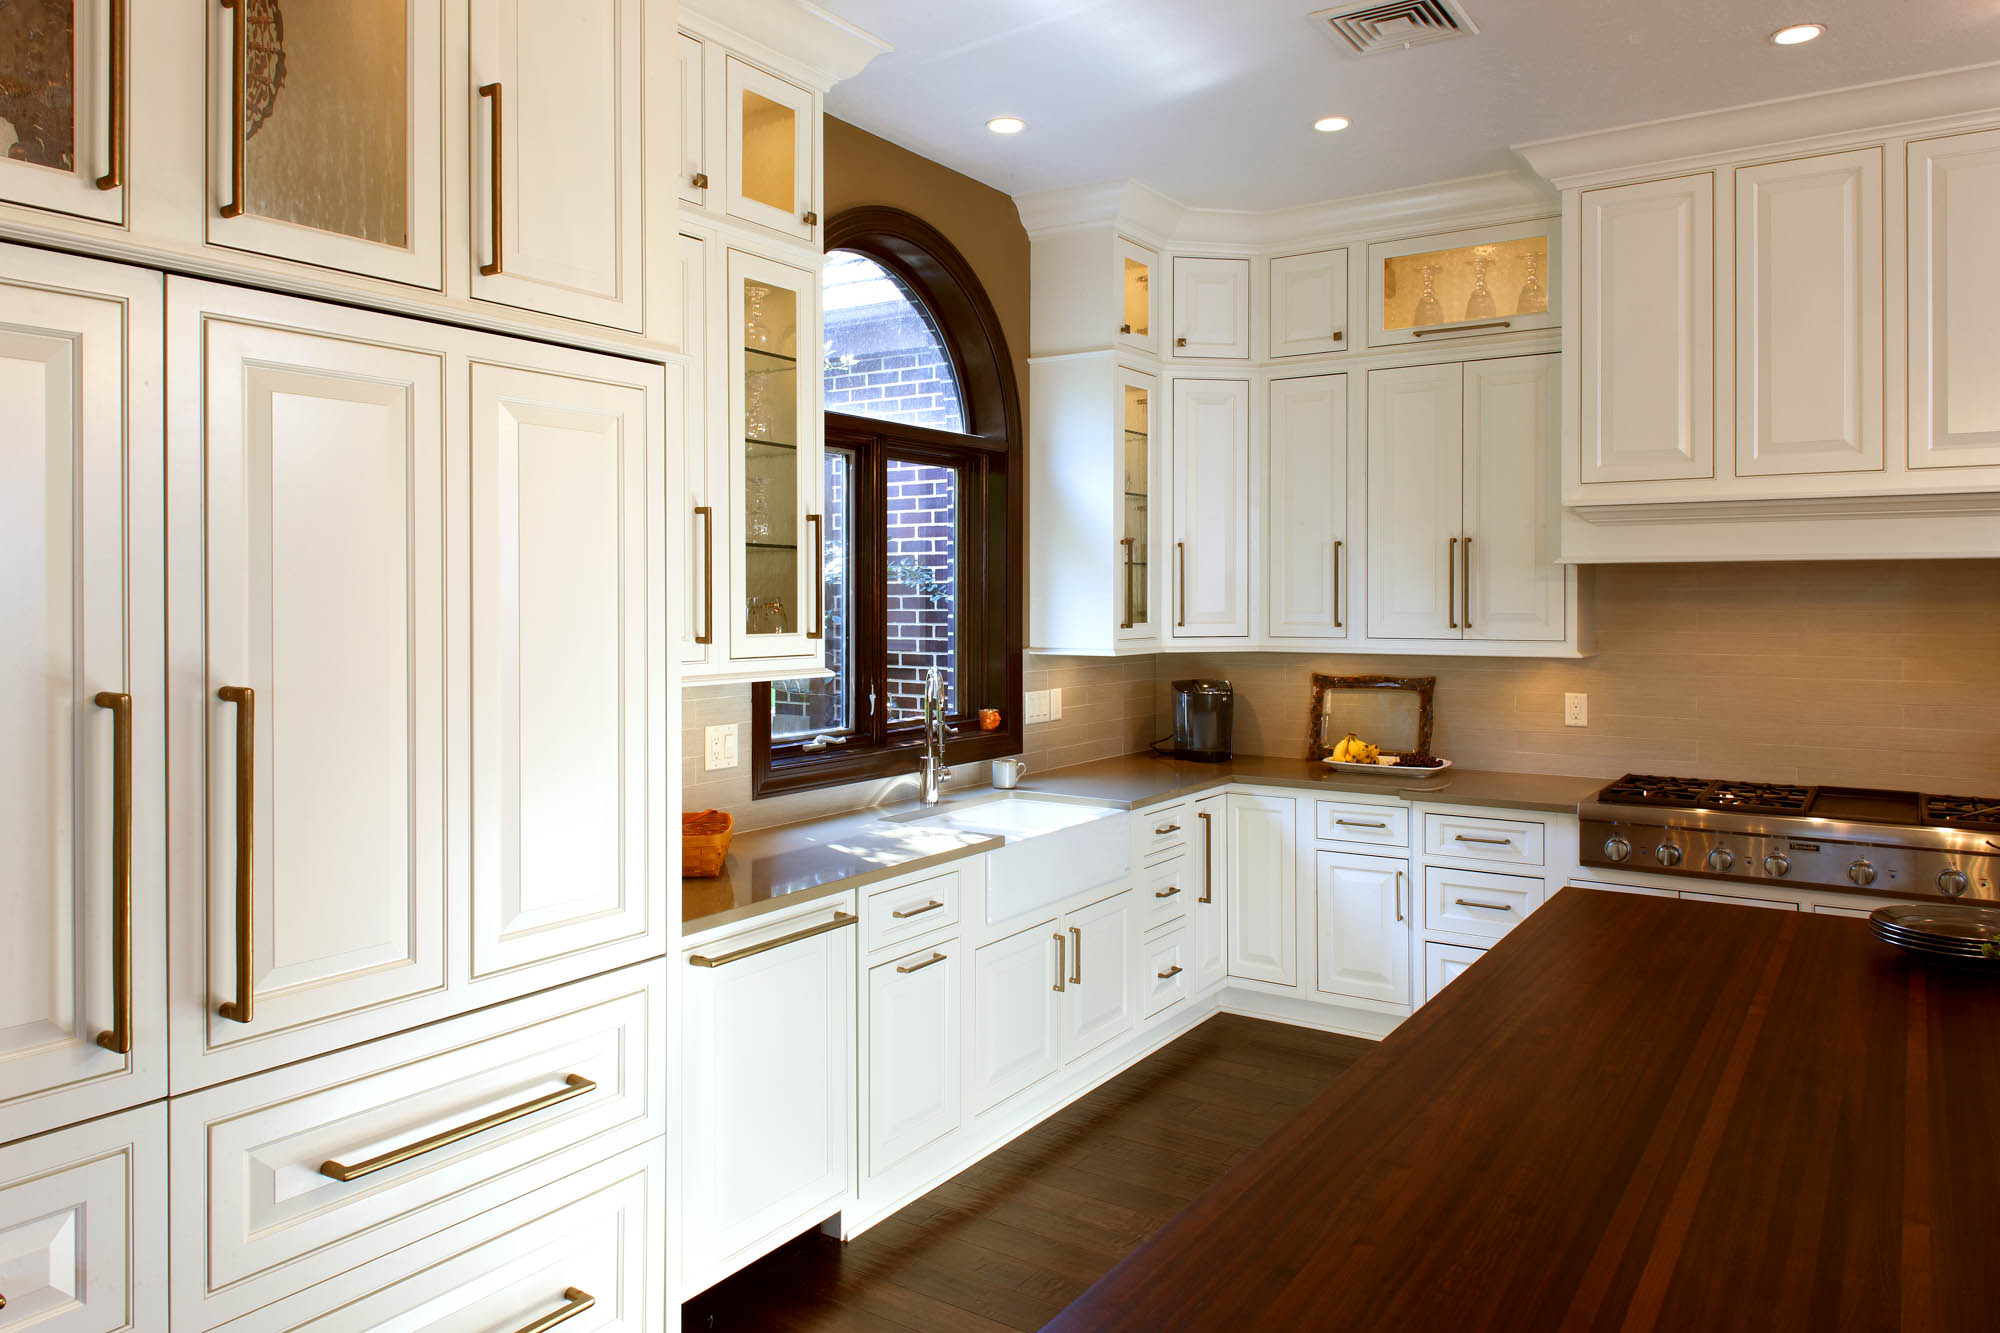 Showplace Kitchen Cabinets See This Kitchen 39s Distinctive Island Showplace Cabinetry